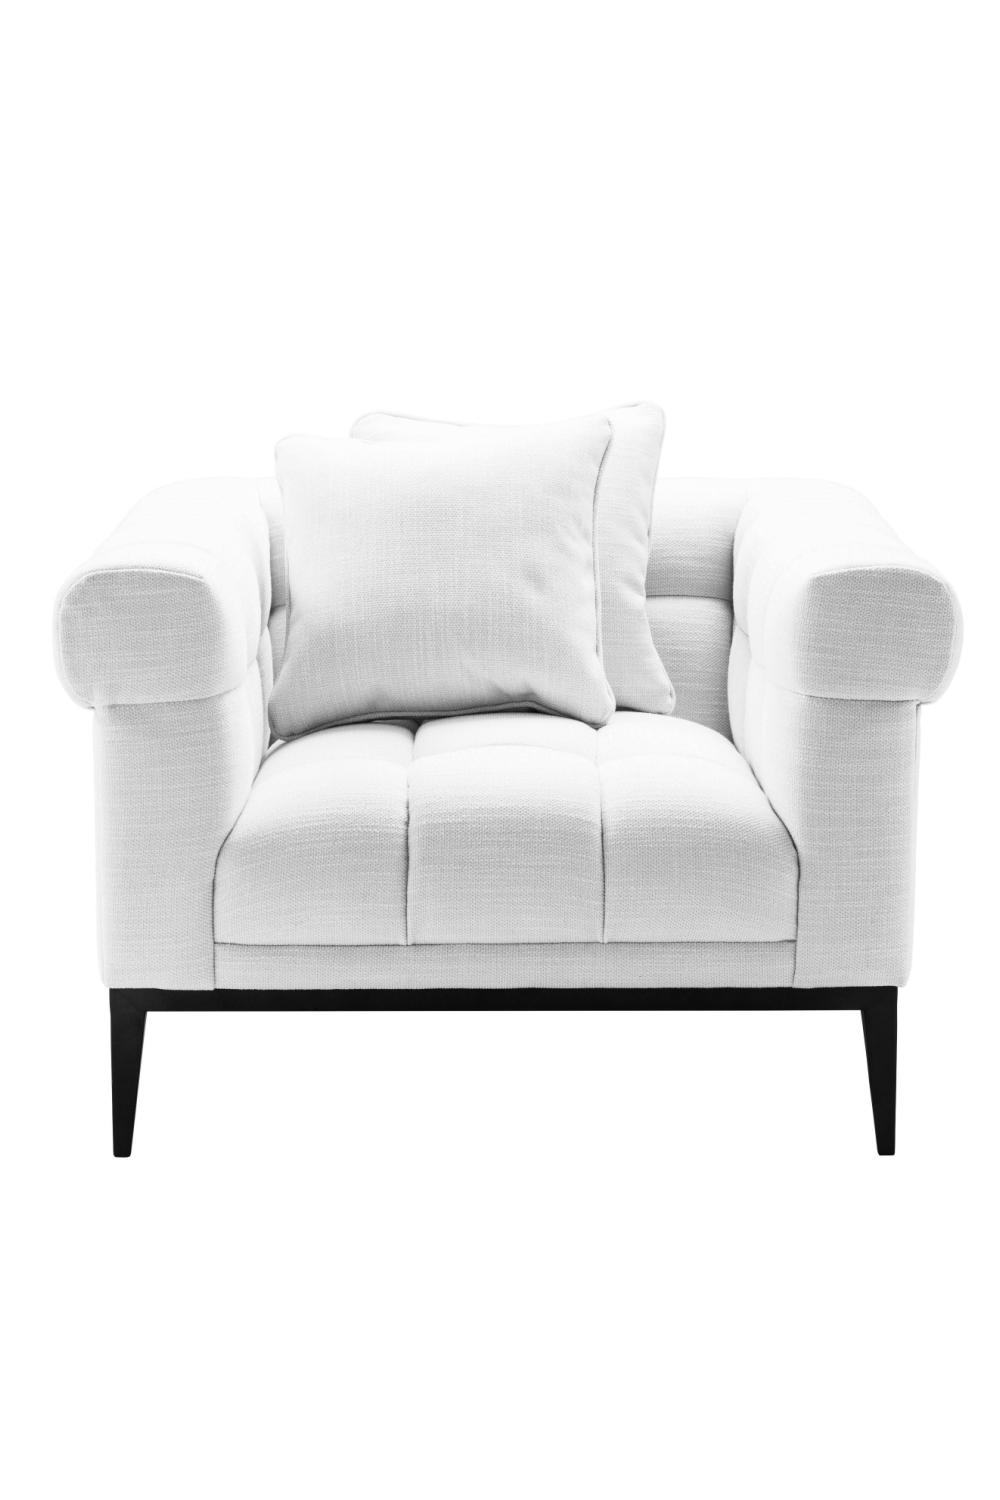 Tufted White Accent Chair | Eichholtz Aurelio | Oroa Luxury Furniture